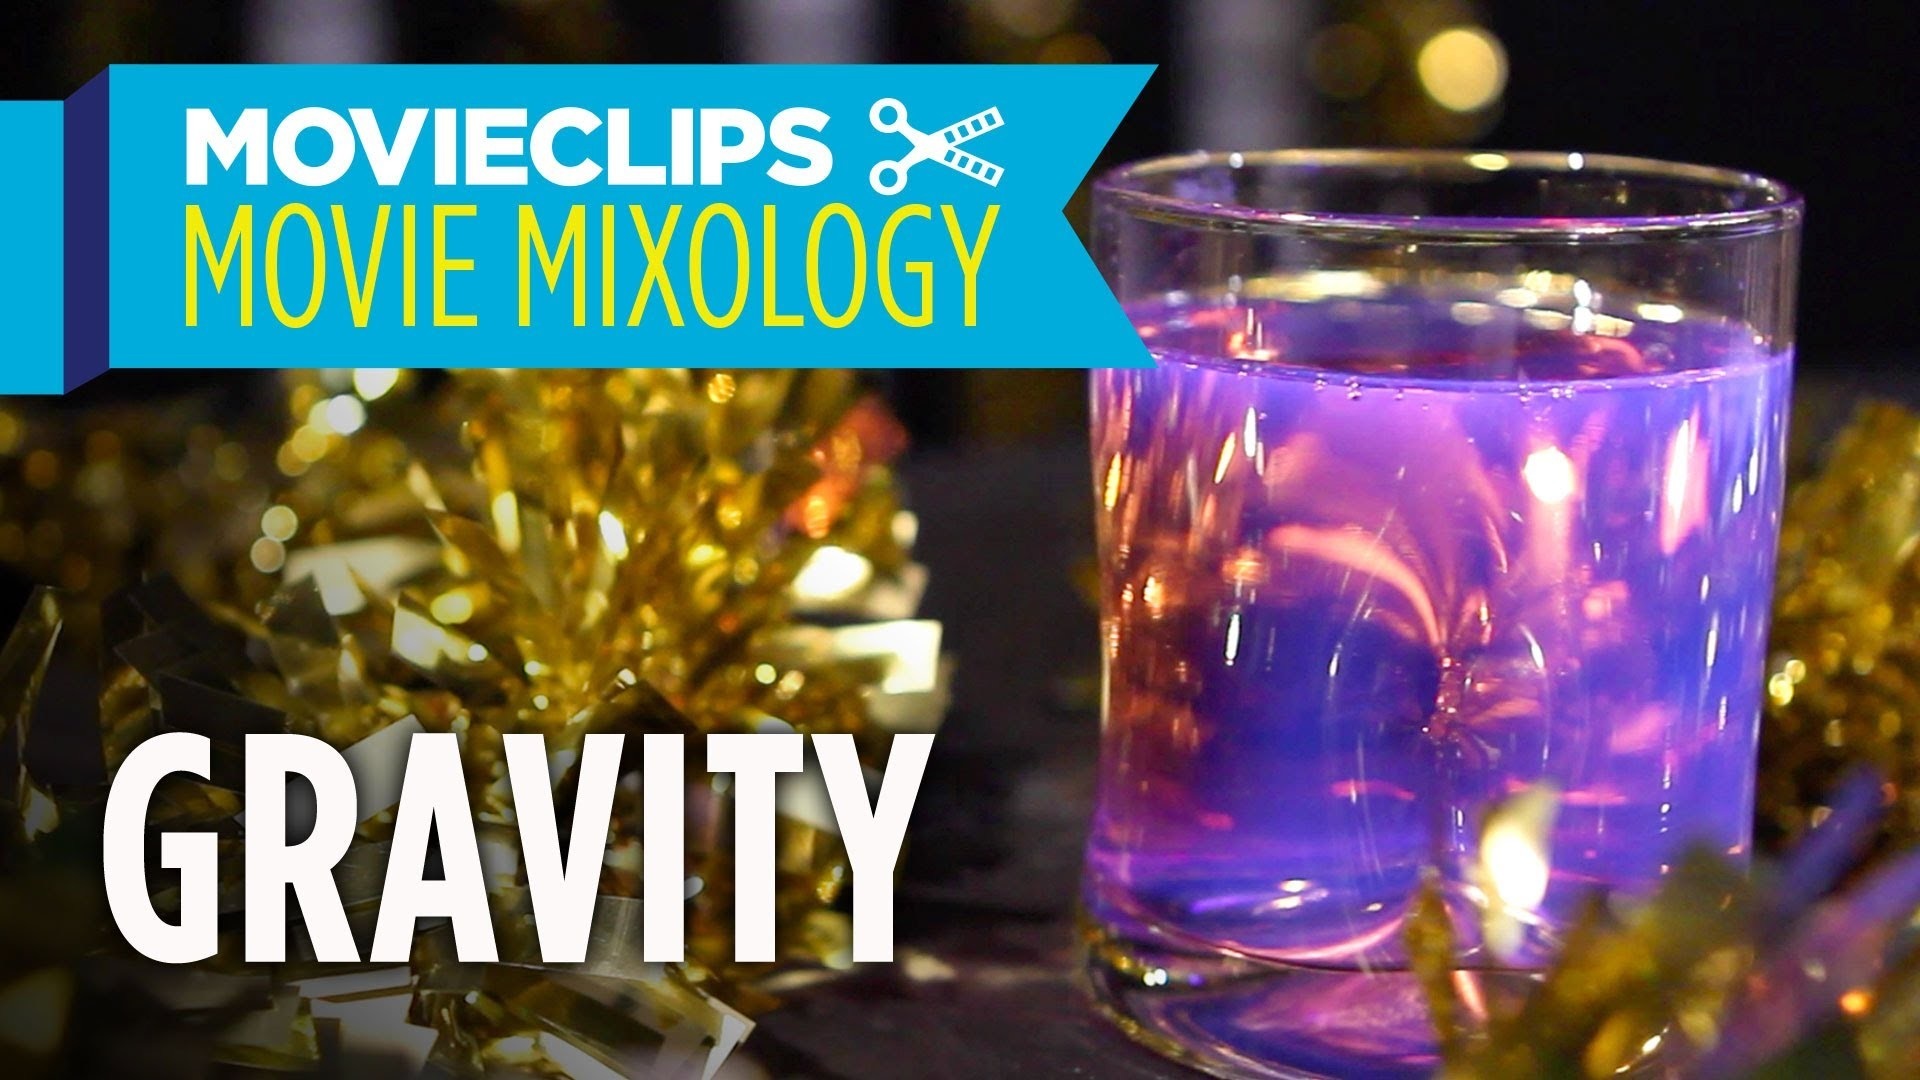 """Movie Mixology: Oscar Edition (2014) - How To Make A Gravity """"Anti-Gravity Cocktail"""""""